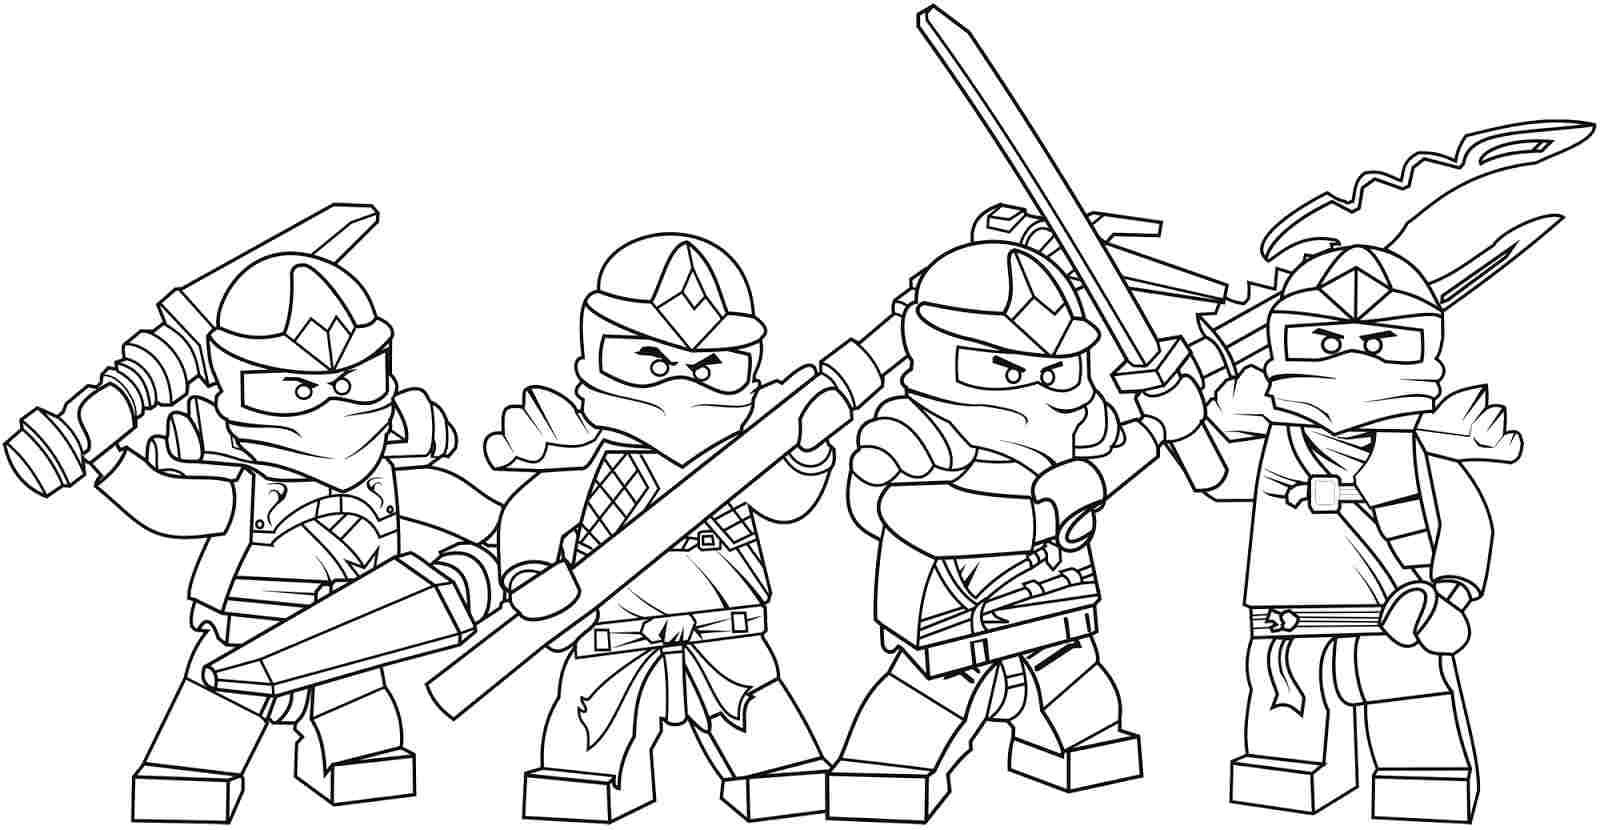 Lego Ninjago Coloring Pages Free Printable Orango Coloring Pages